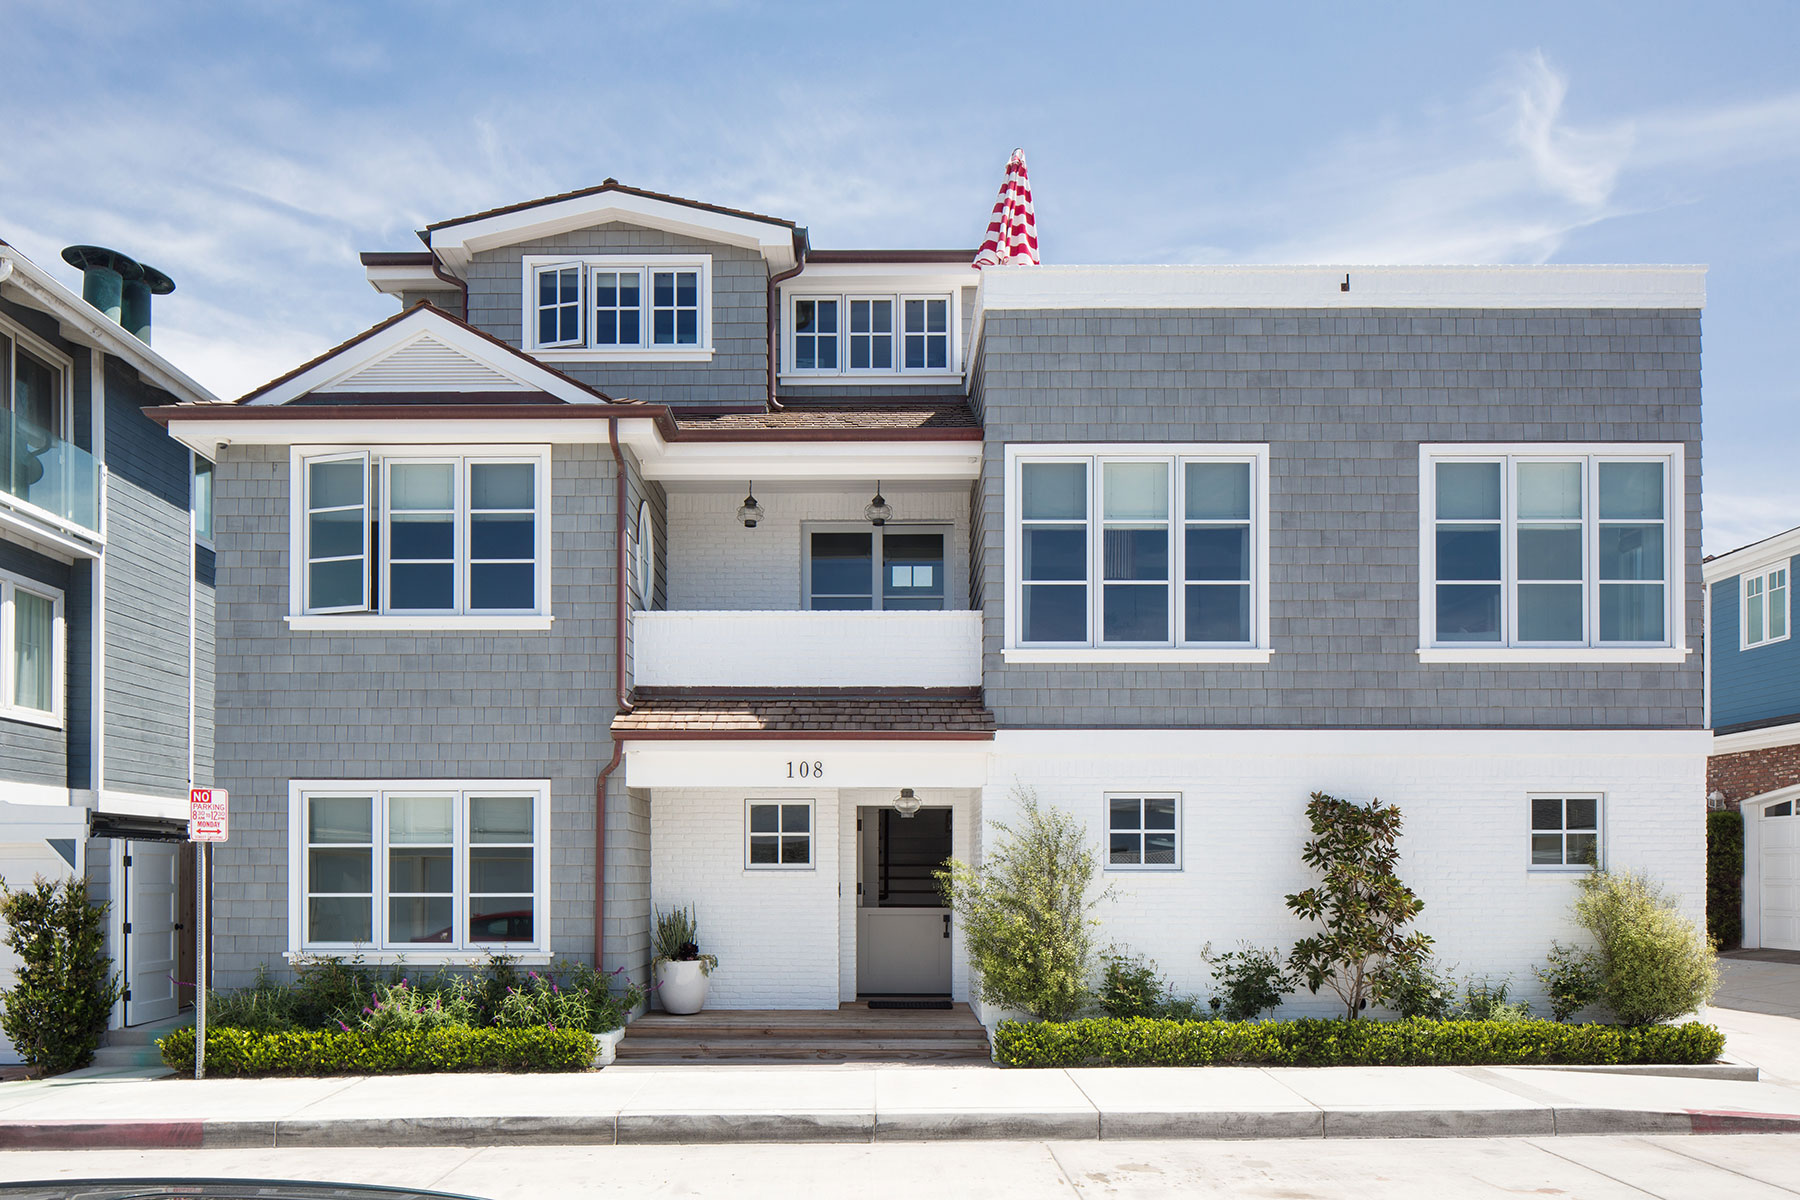 Maison unifamiliale pour l Vente à 108 11th Street Newport Beach, Californie, 92661 États-Unis